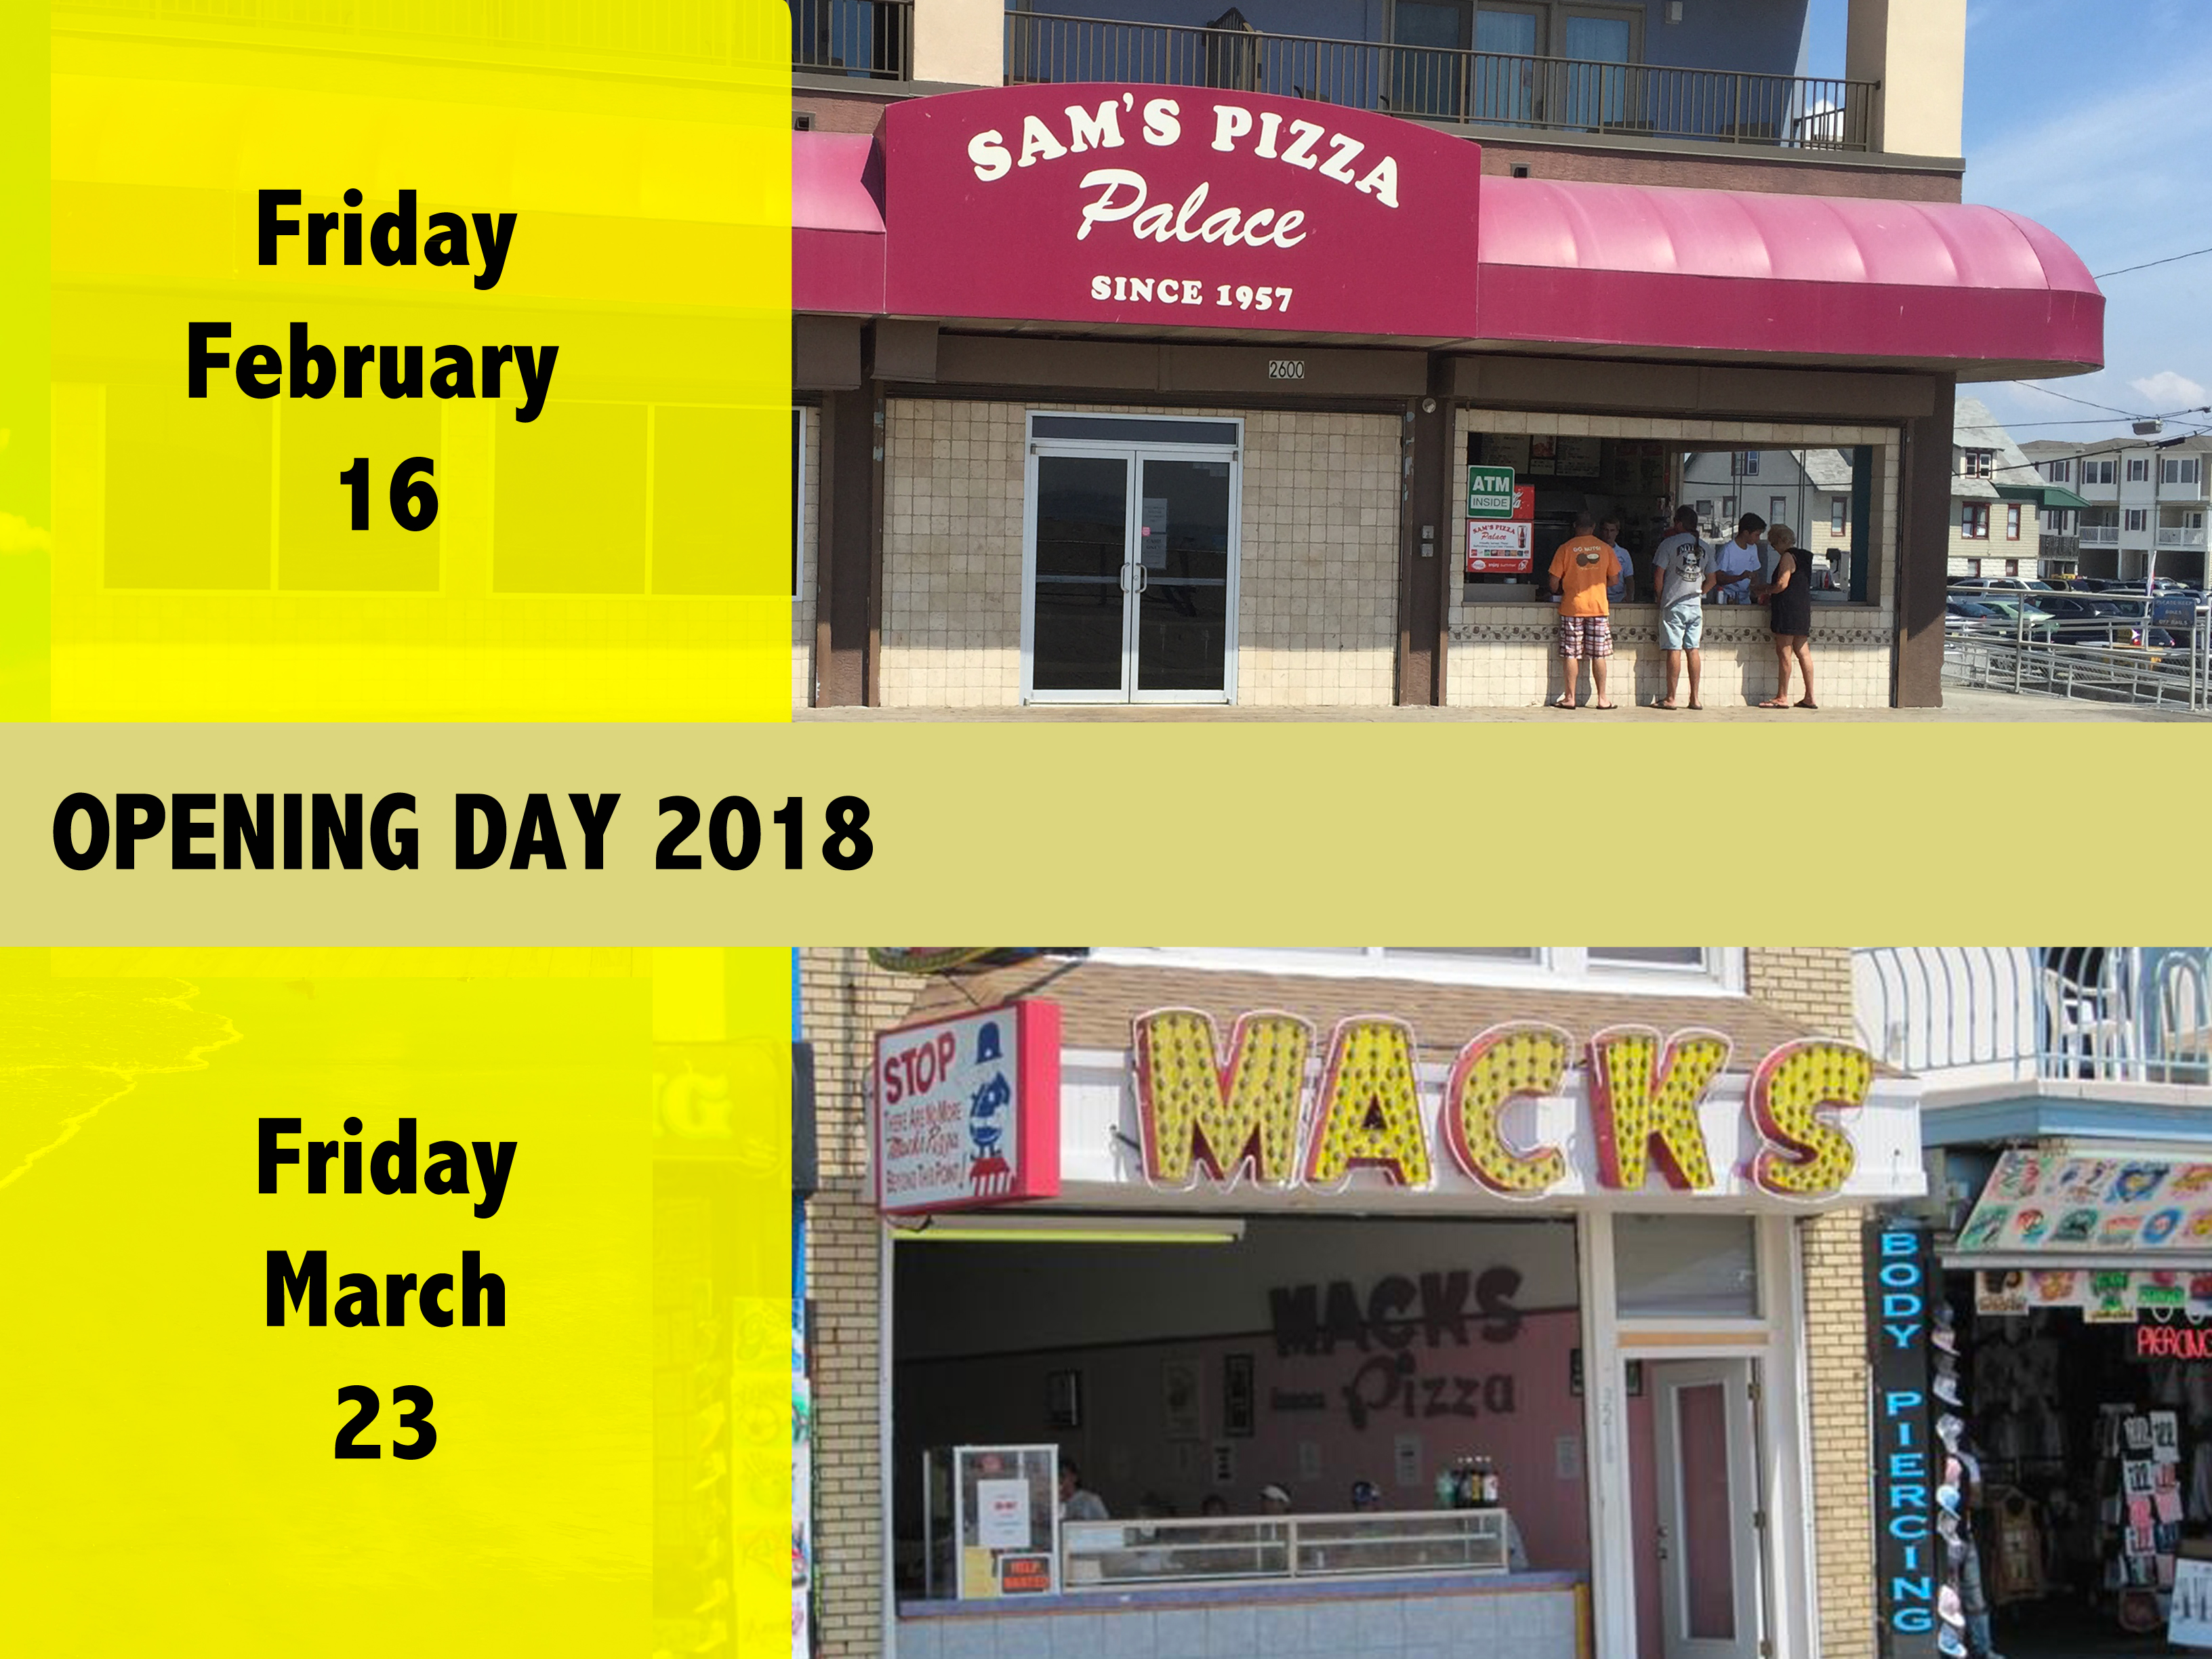 Opening Dates for Sam's and Mack's Pizza